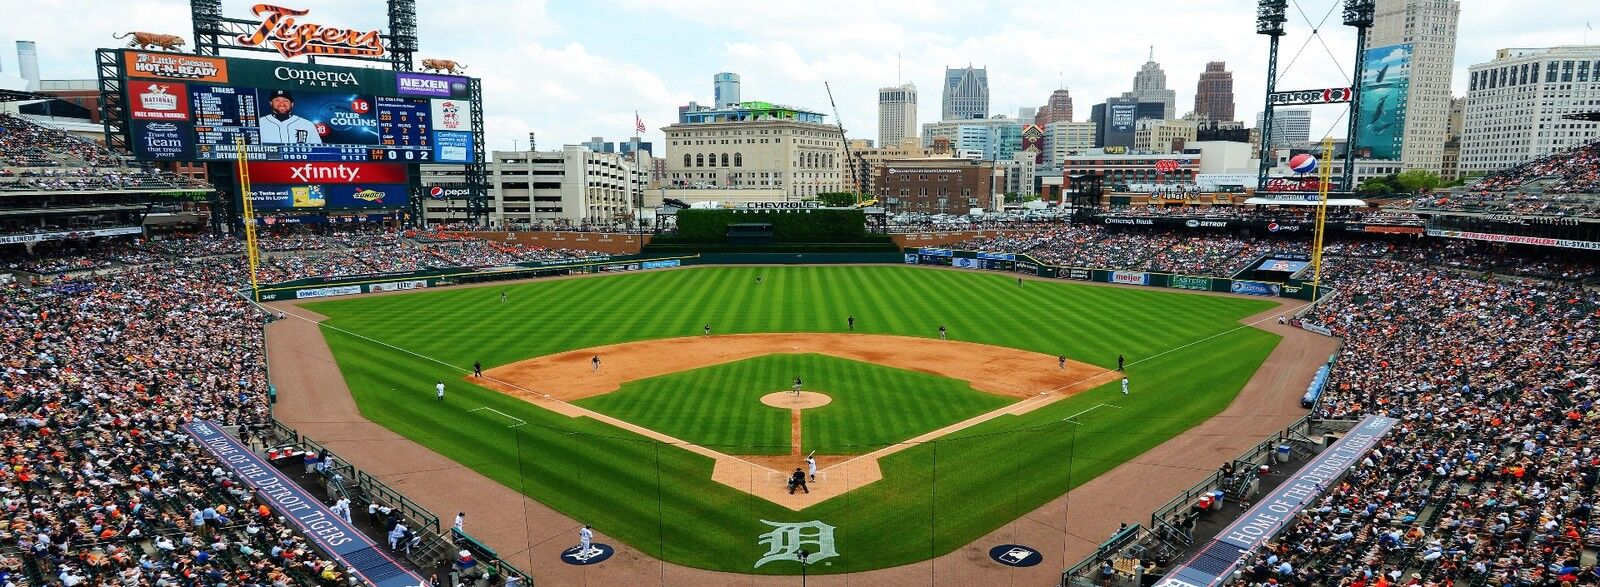 Oakland Athletics at Detroit Tigers